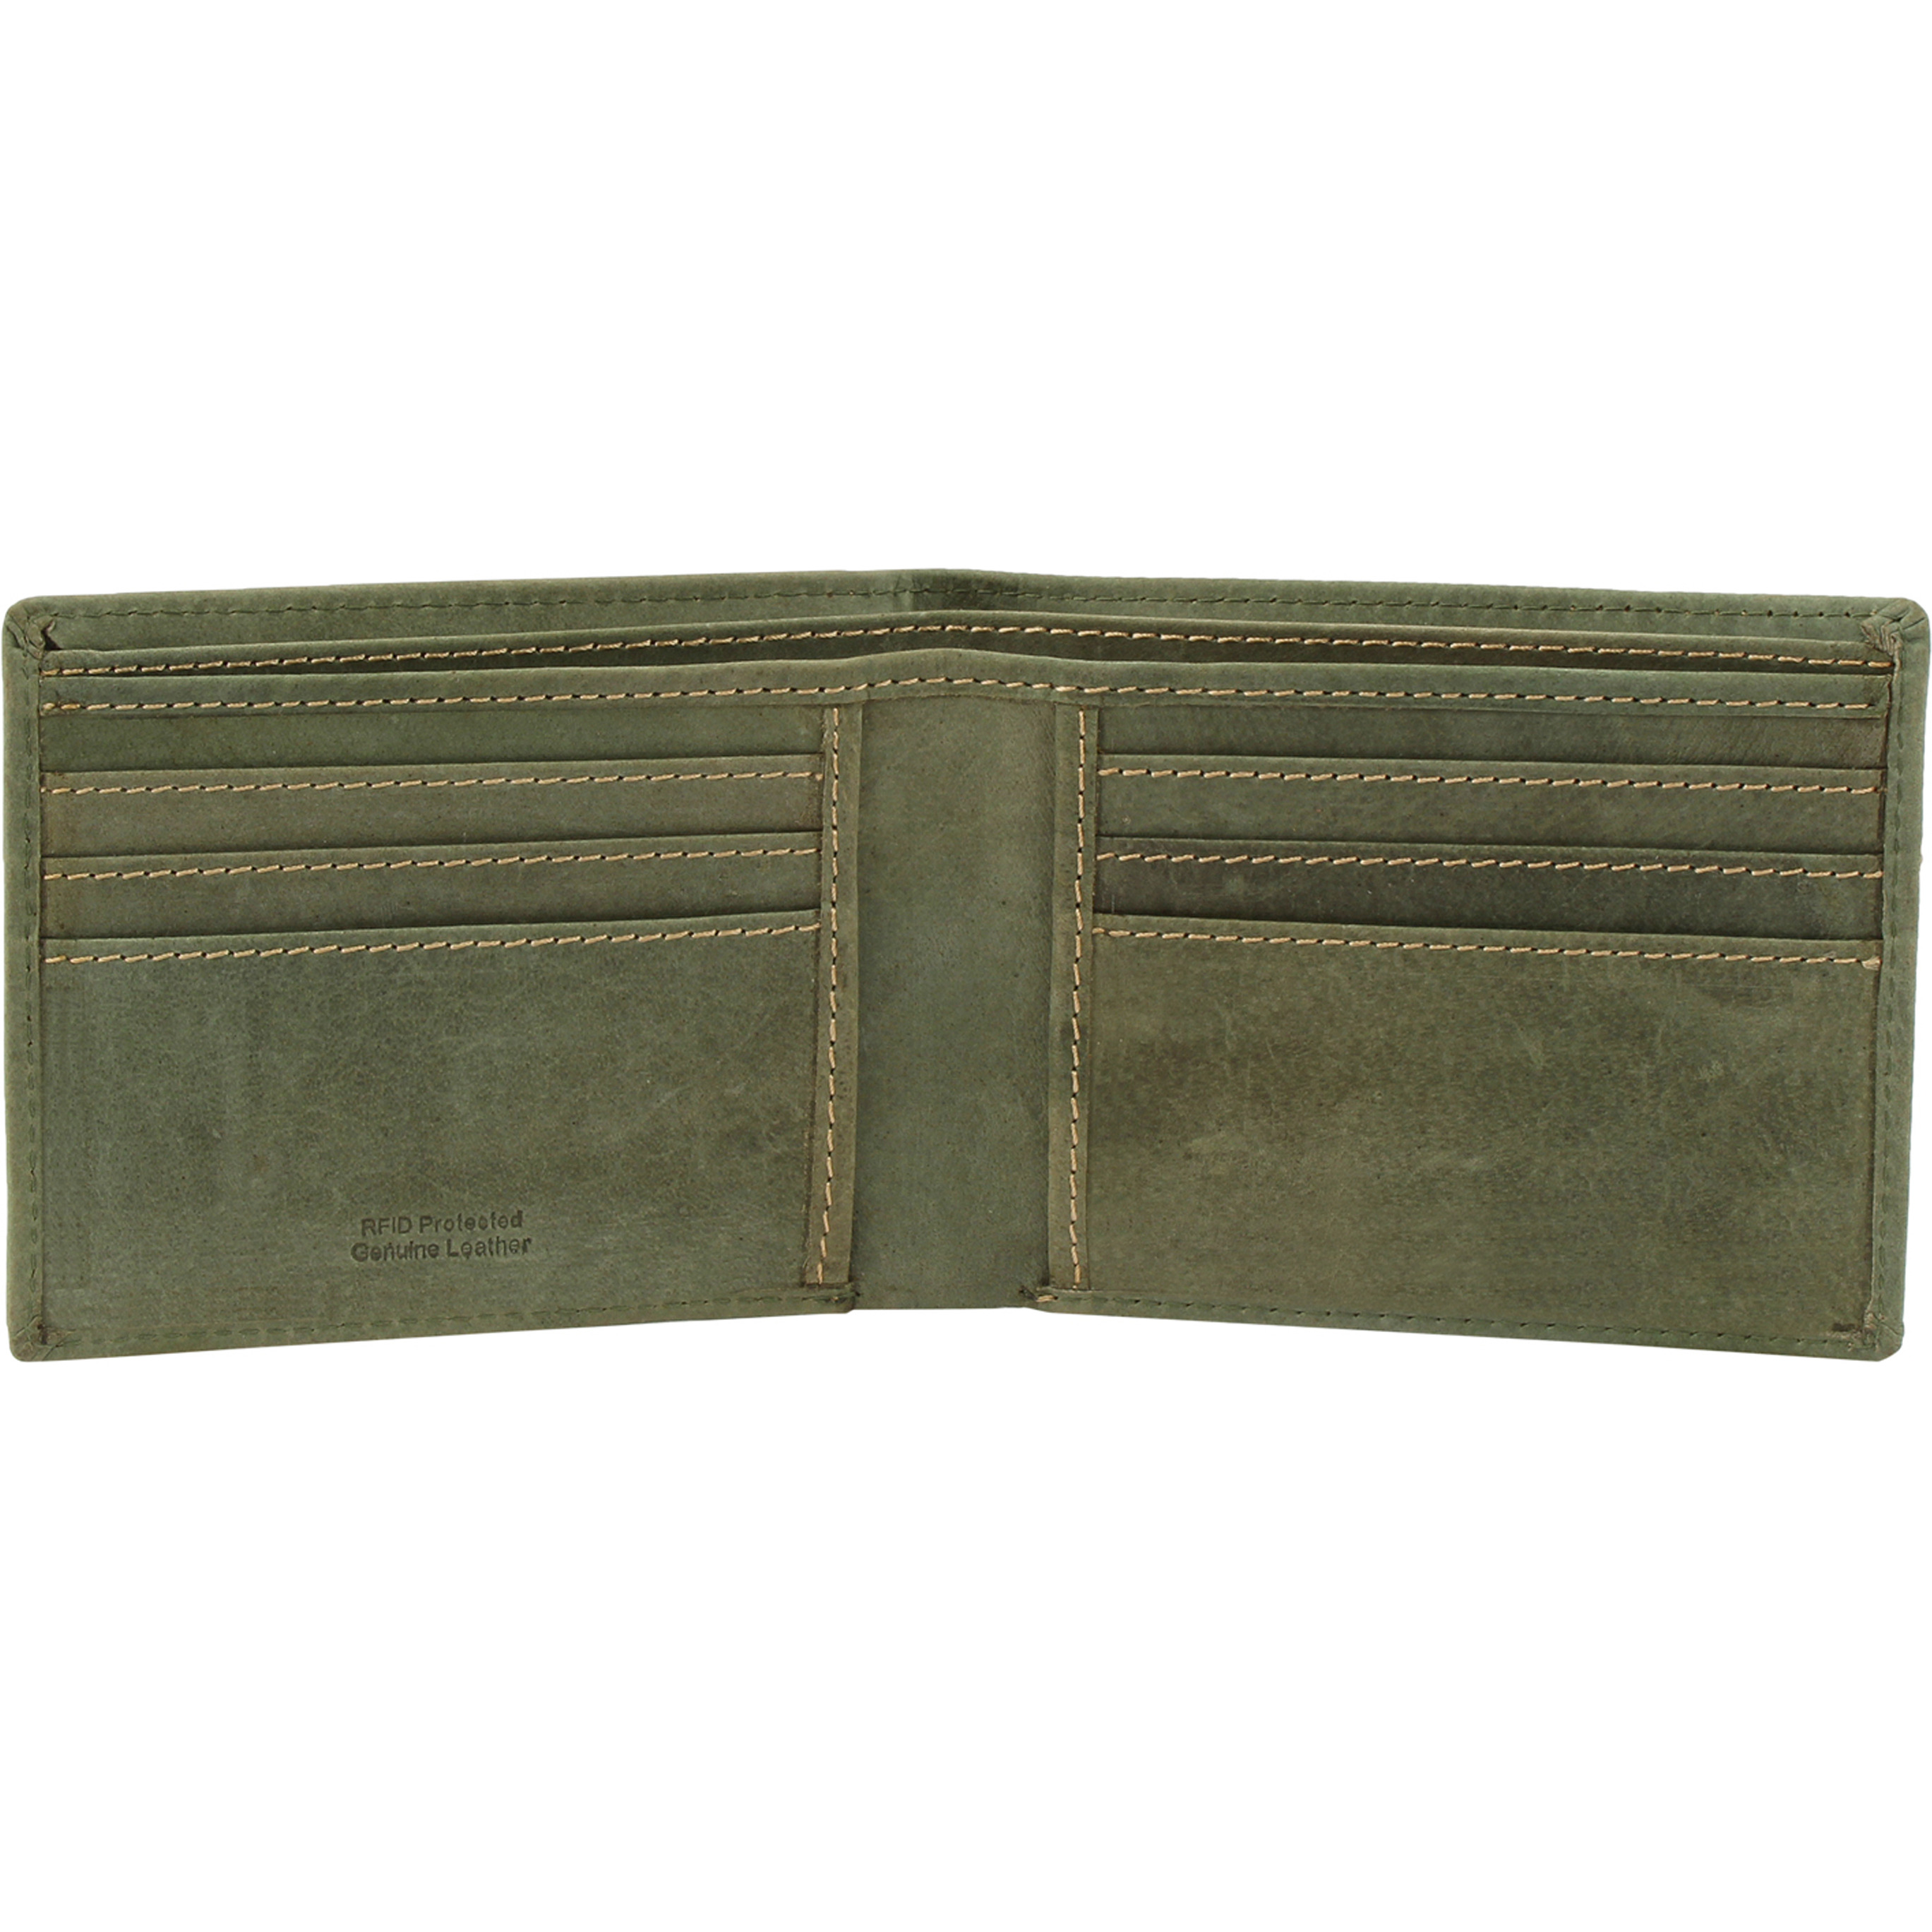 FIONA Mens Leather Bifold Wallet | Wallets For Men RFID Blocking | Genuine Leather | Extra Capacity Mens Green Wallet |